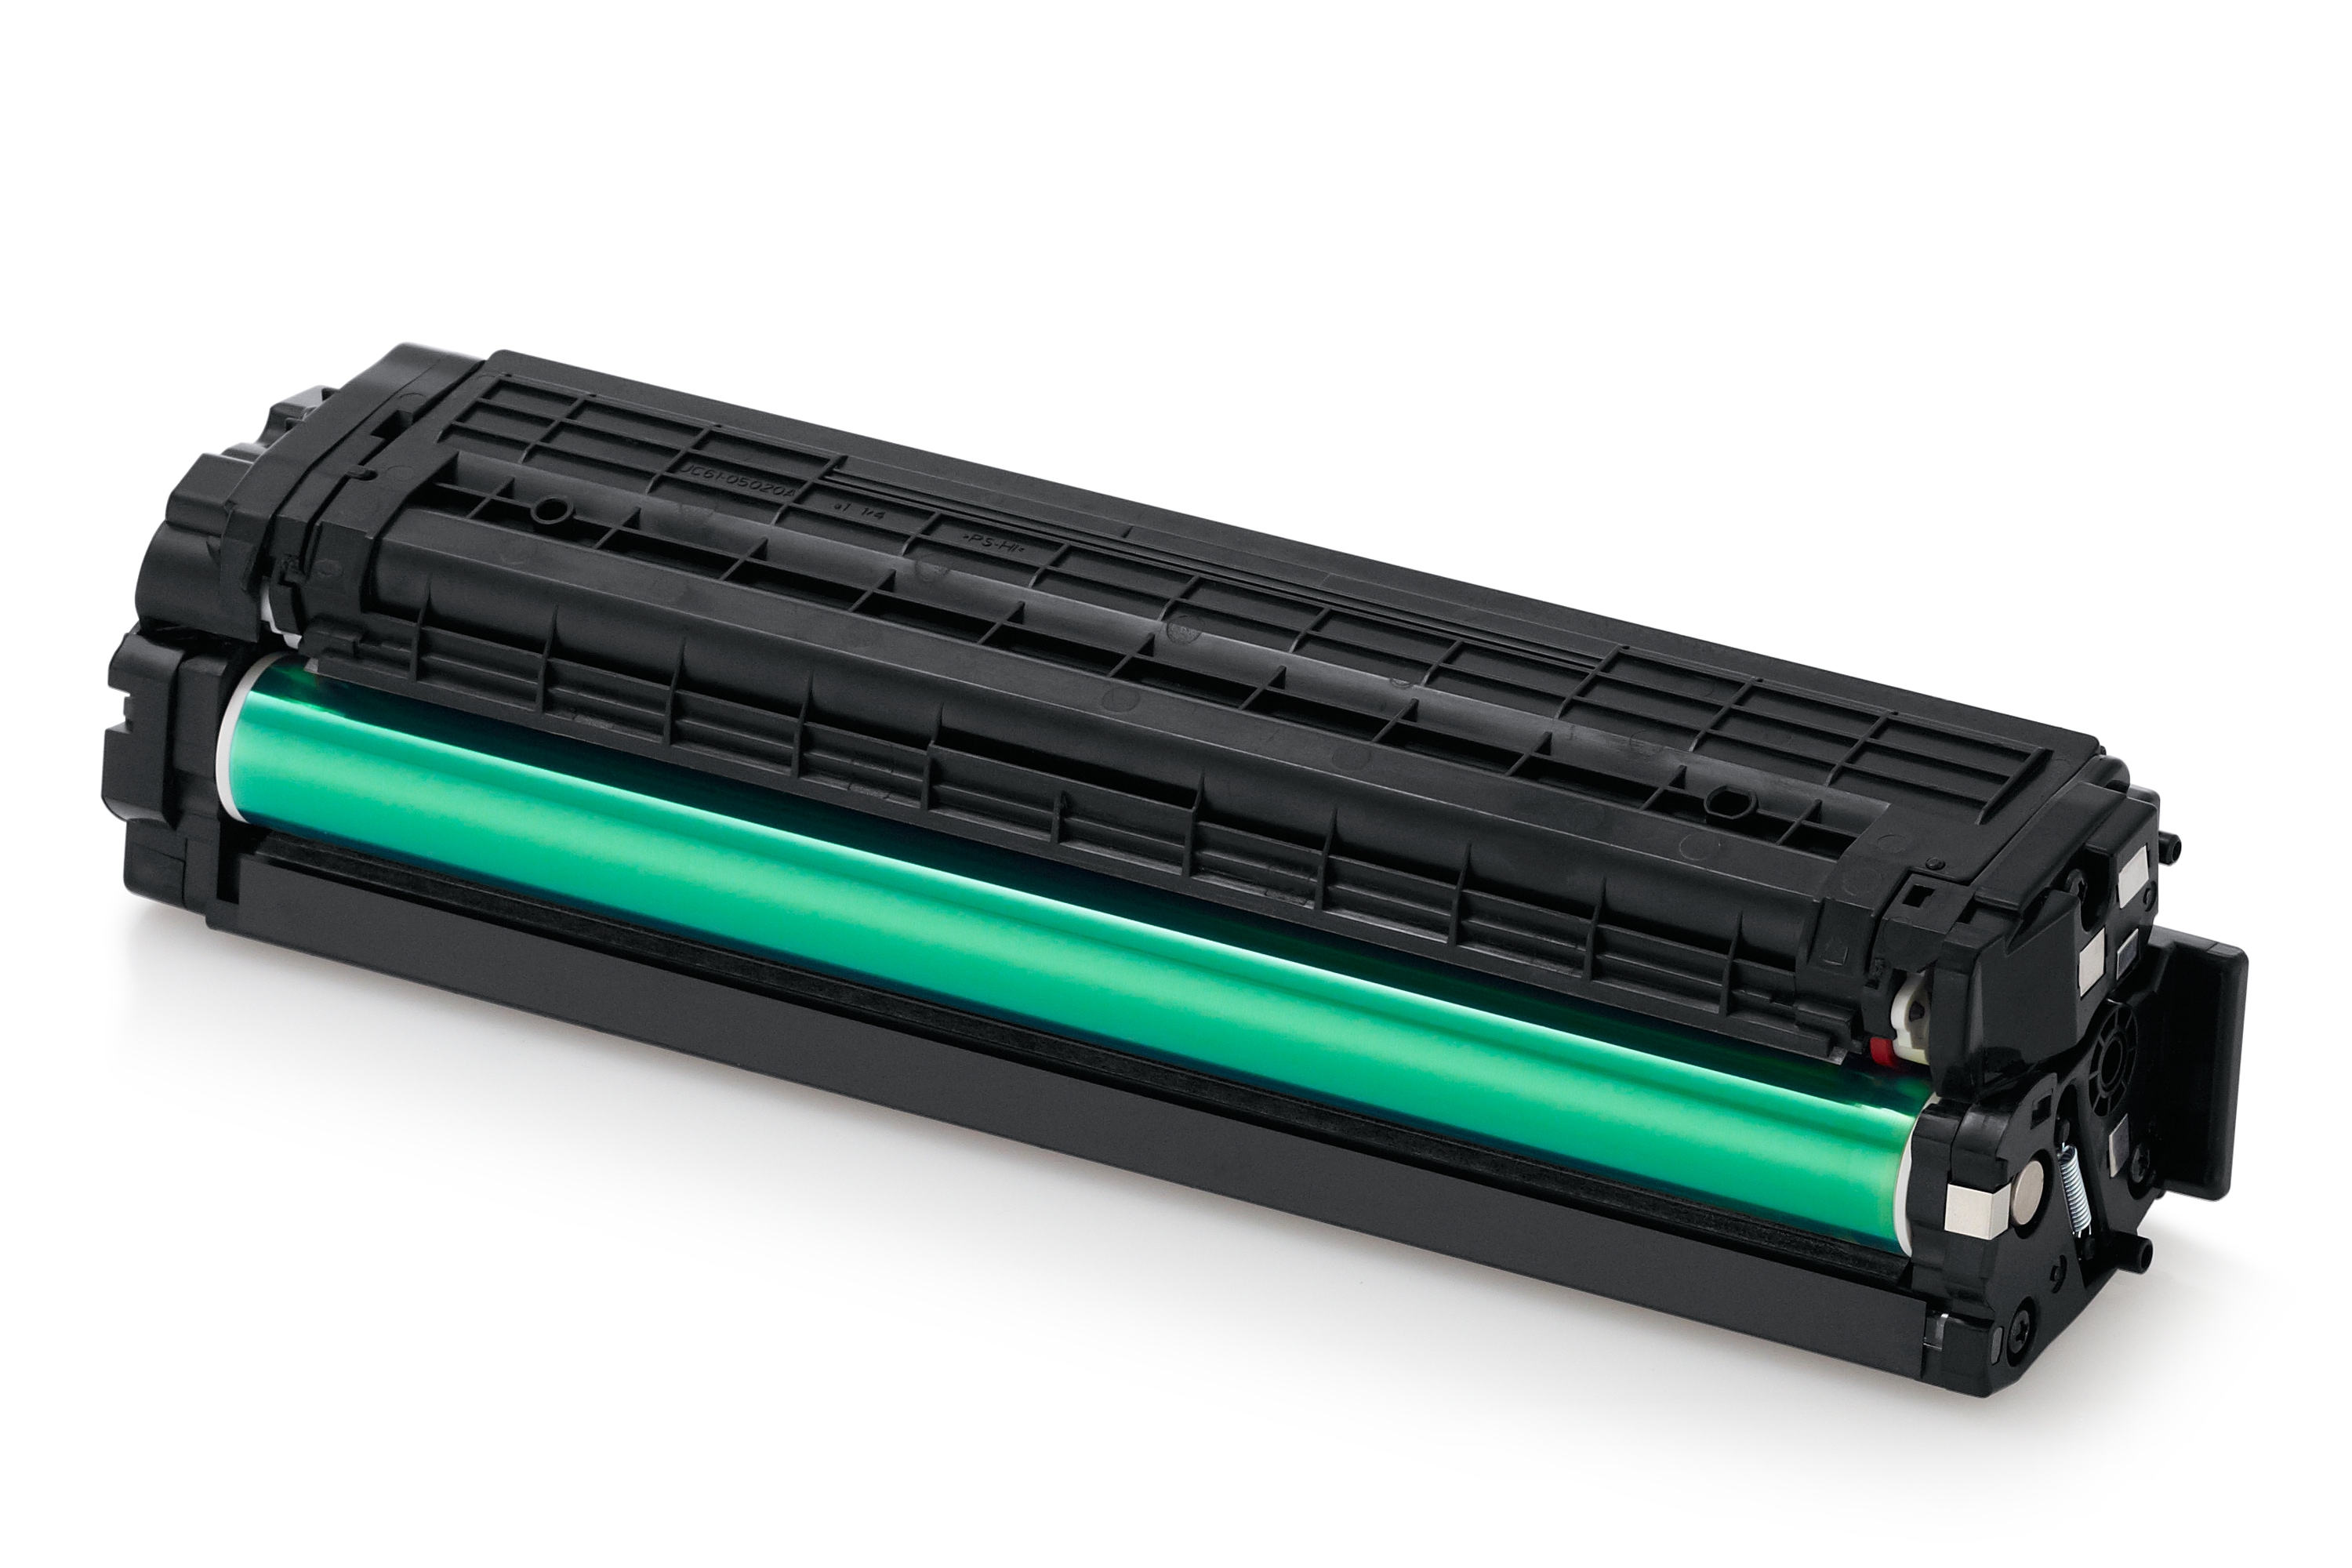 CLT-Y504S Colour Toner Cartridge